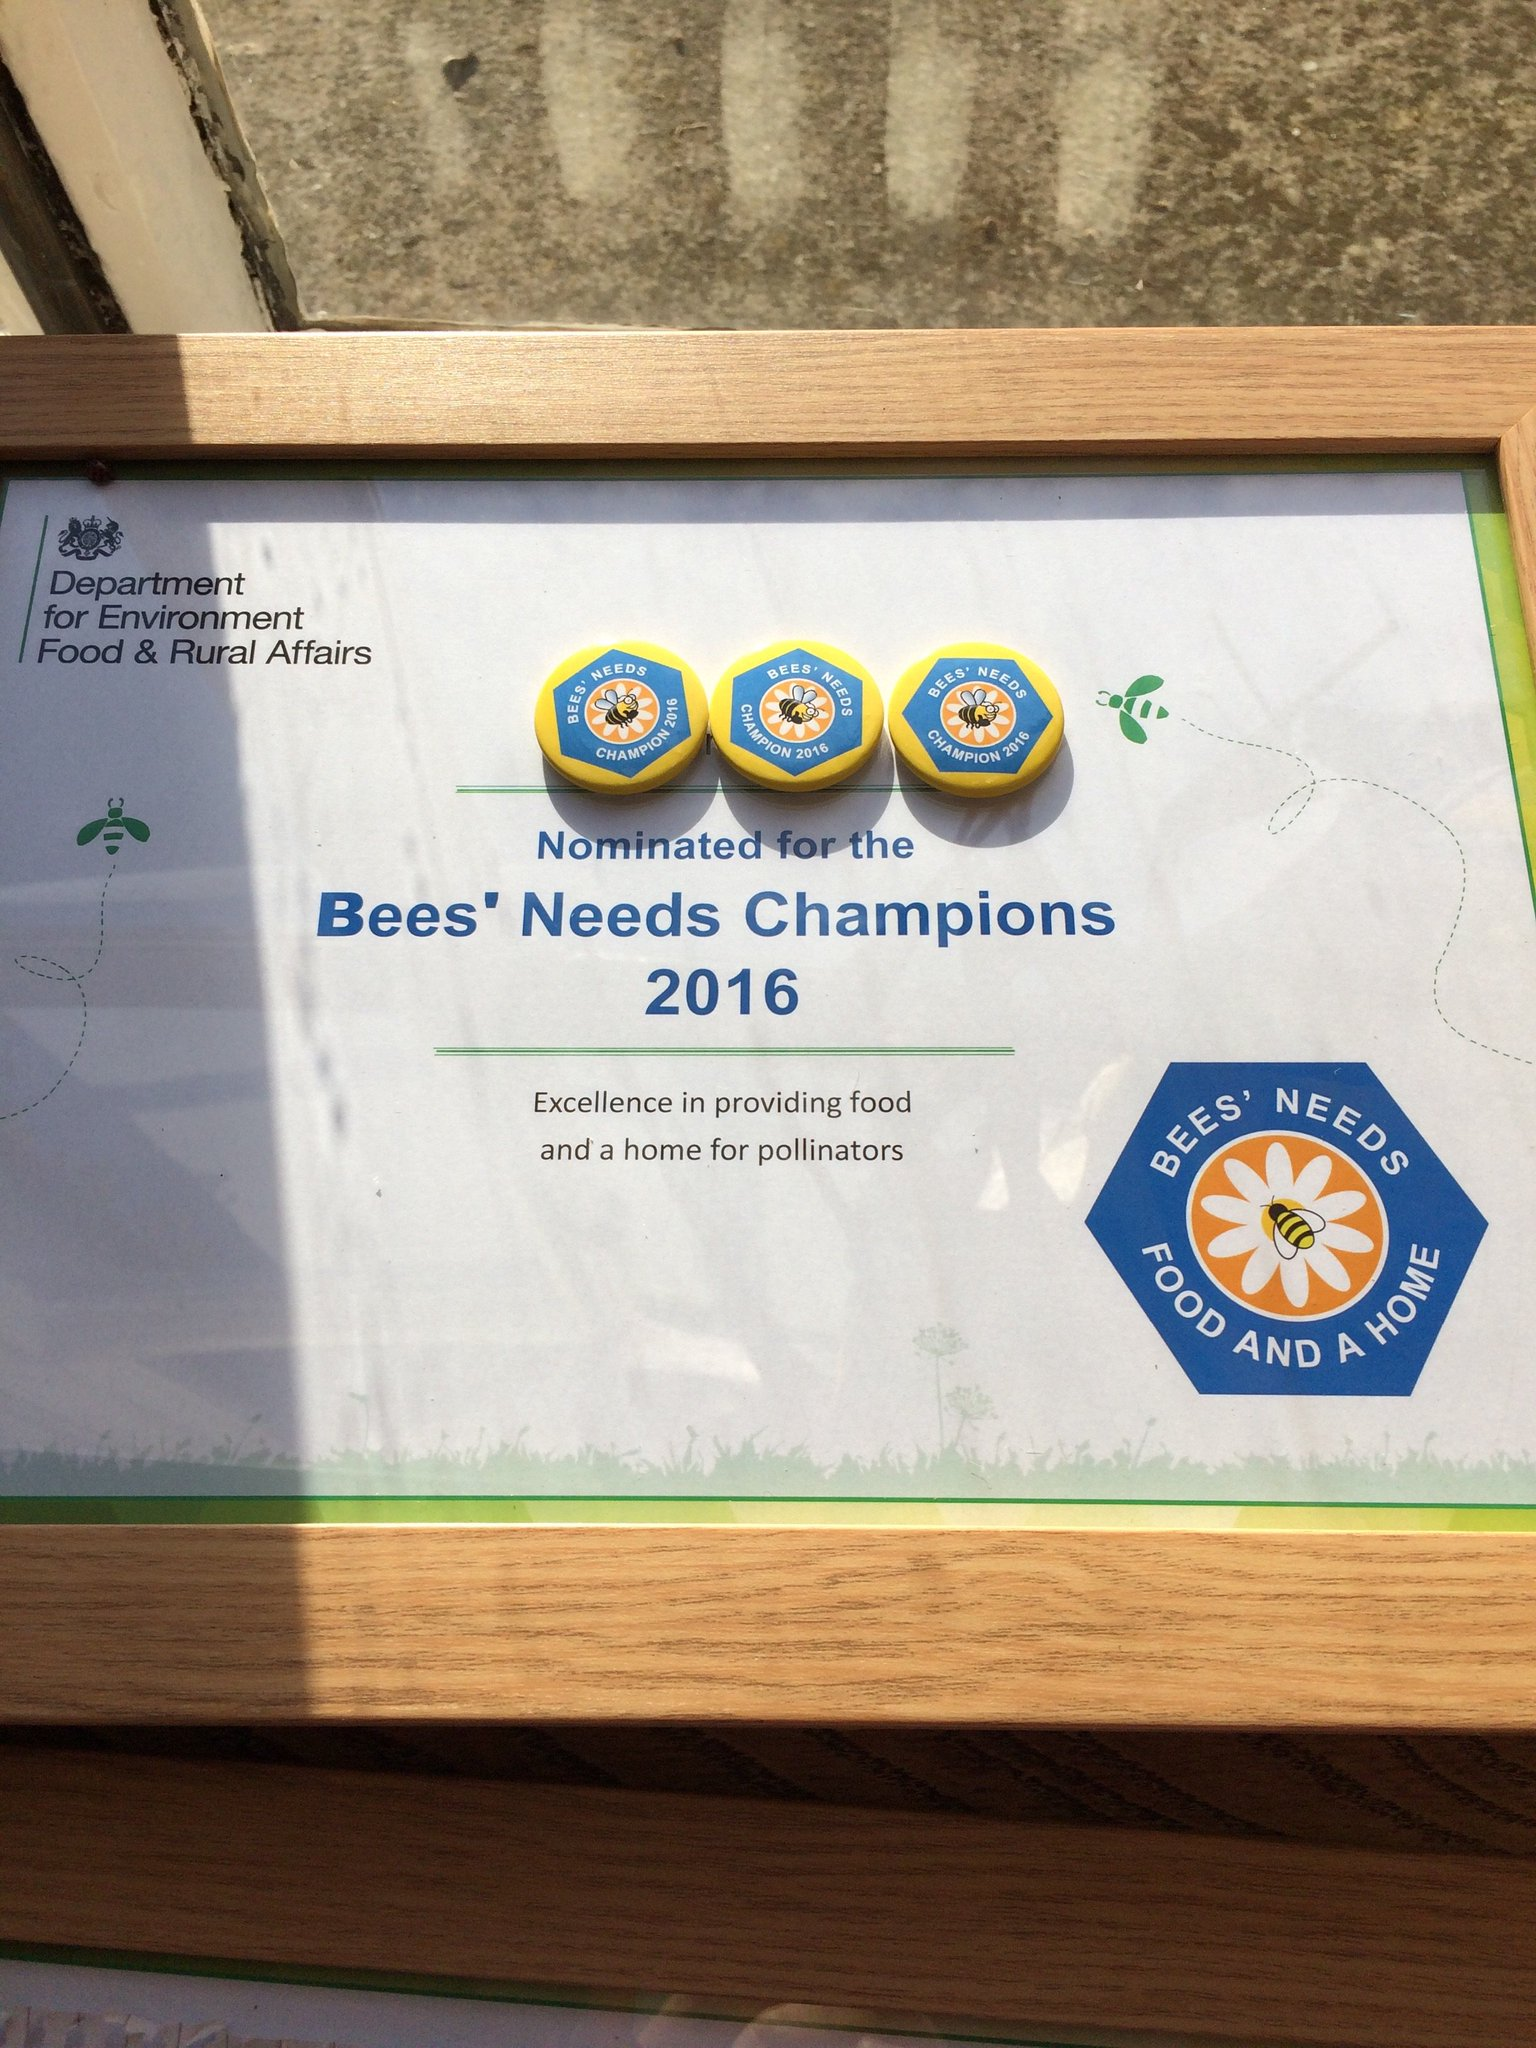 Thumbnail for #BeesNeeds Champions Awards 2016